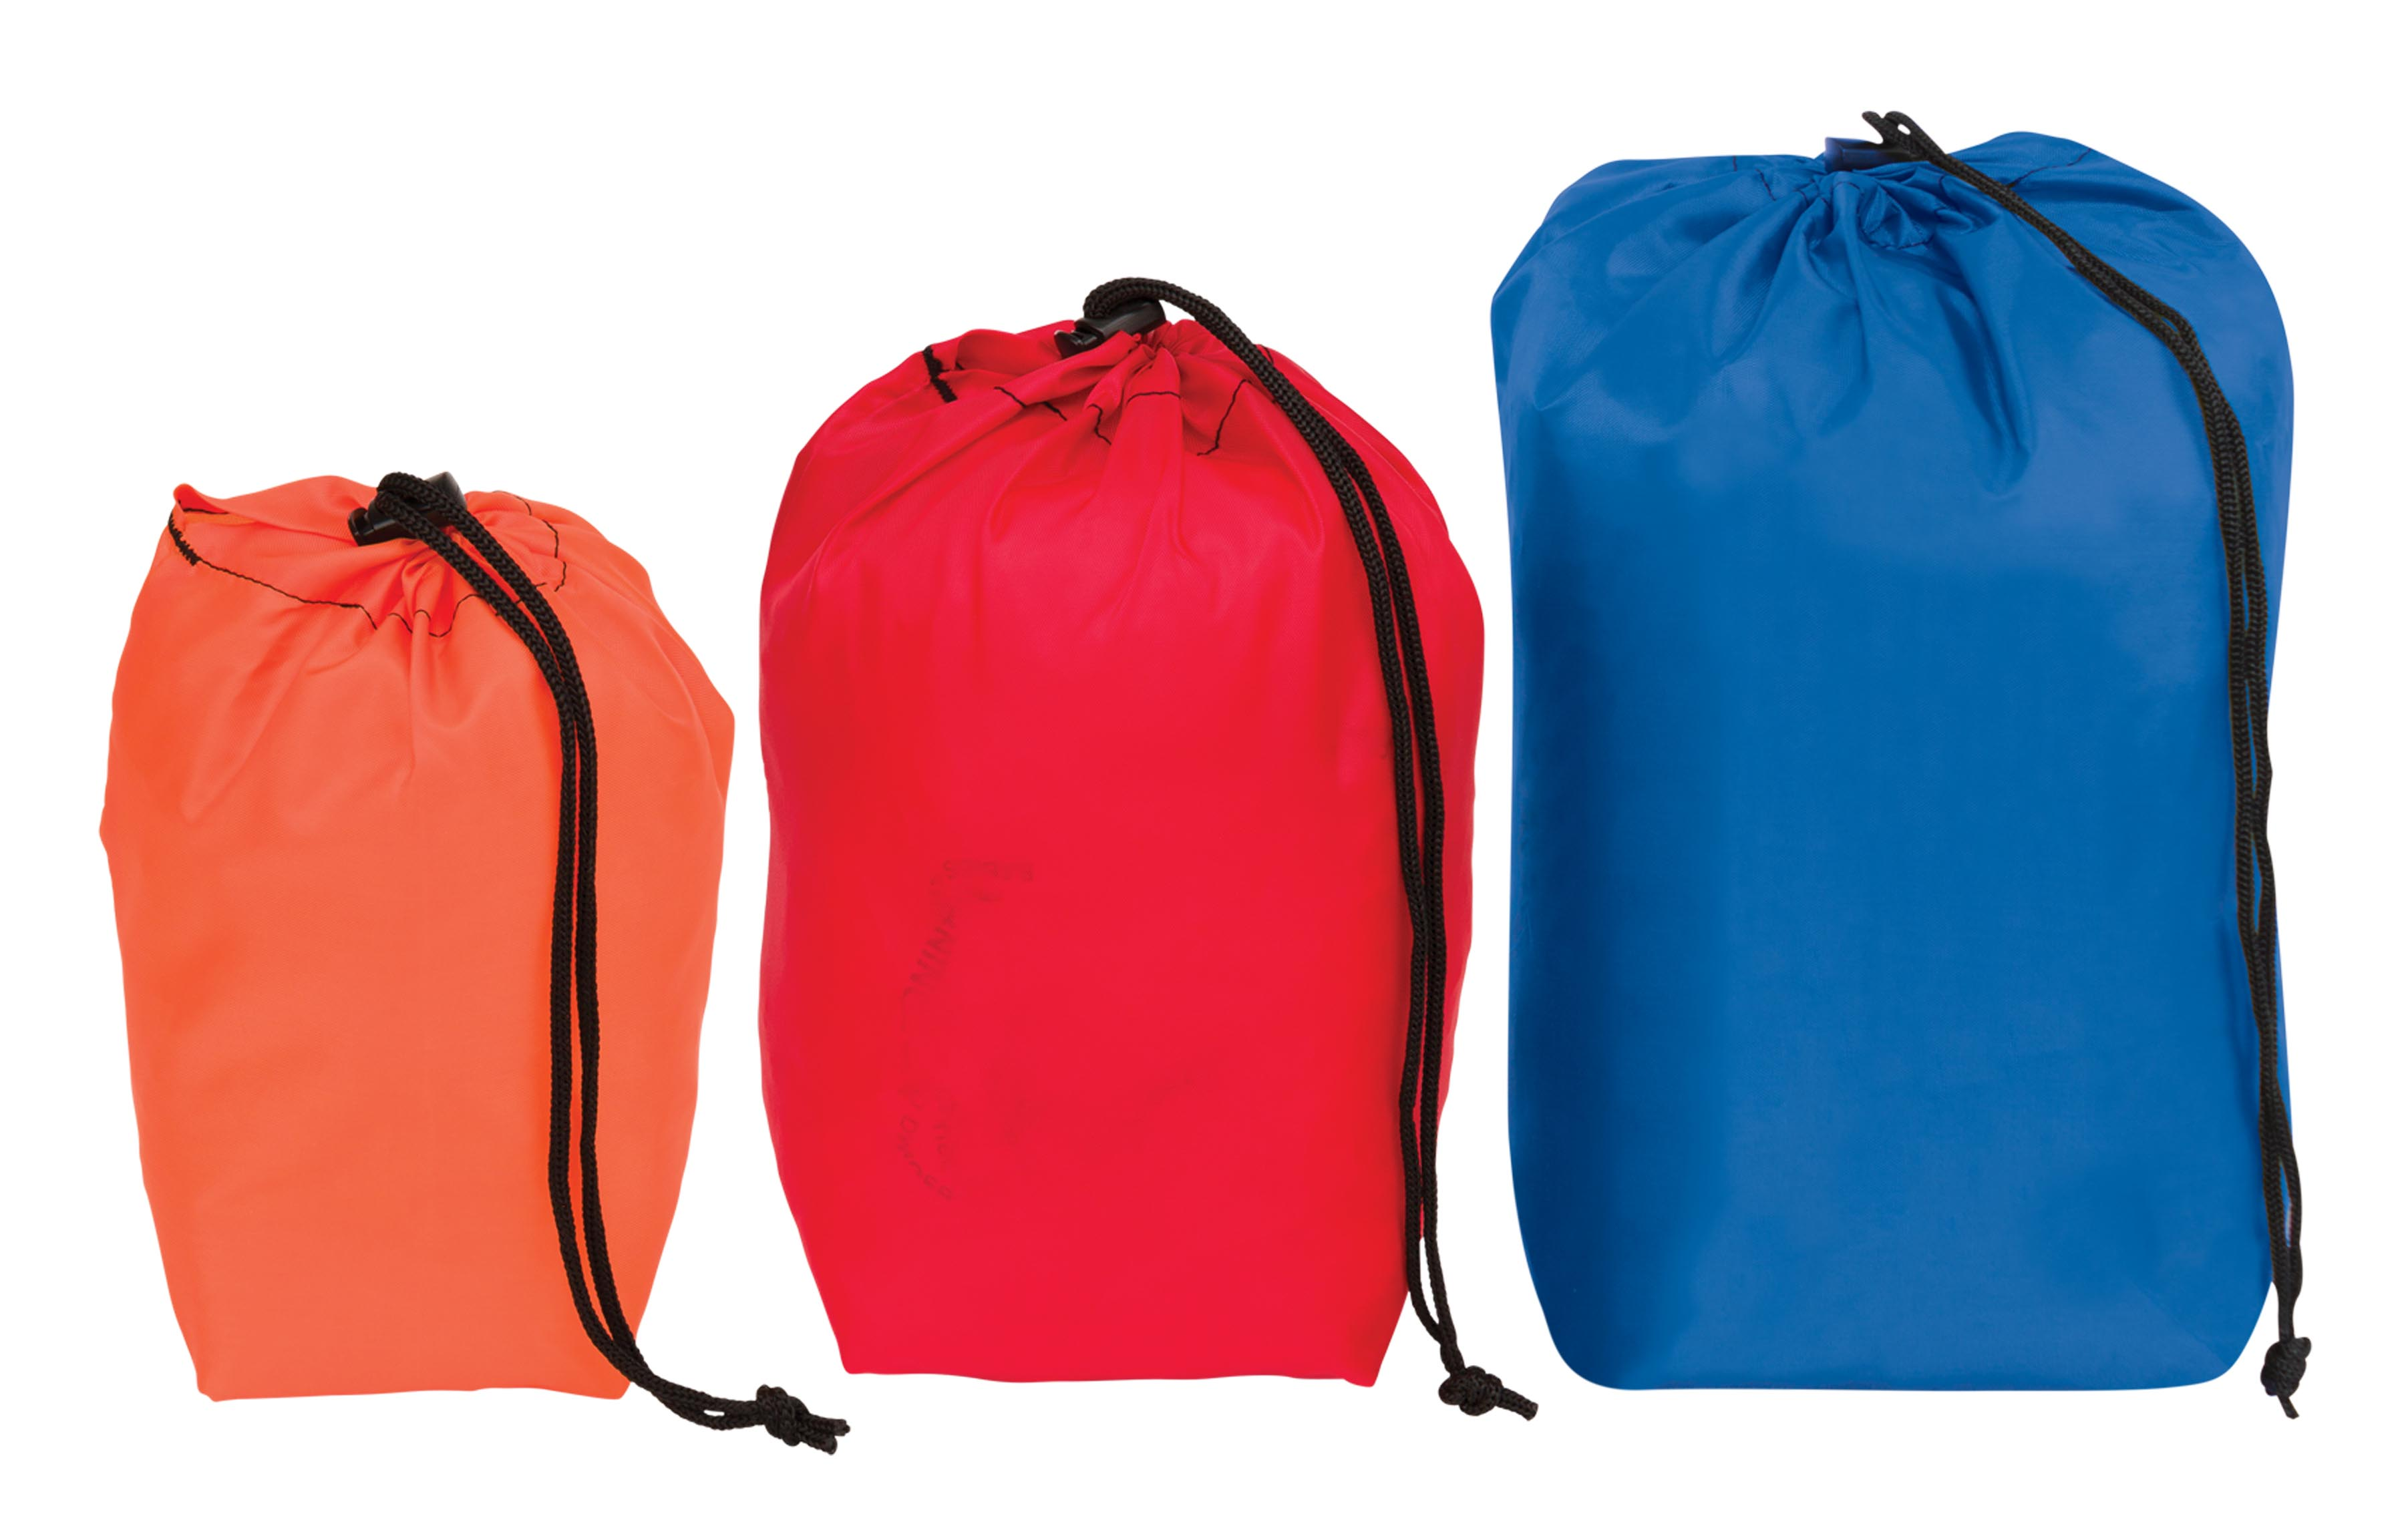 Portable Sport Travel Outdoor Storage Pouch Waterproof Ditty Drawstring Bags